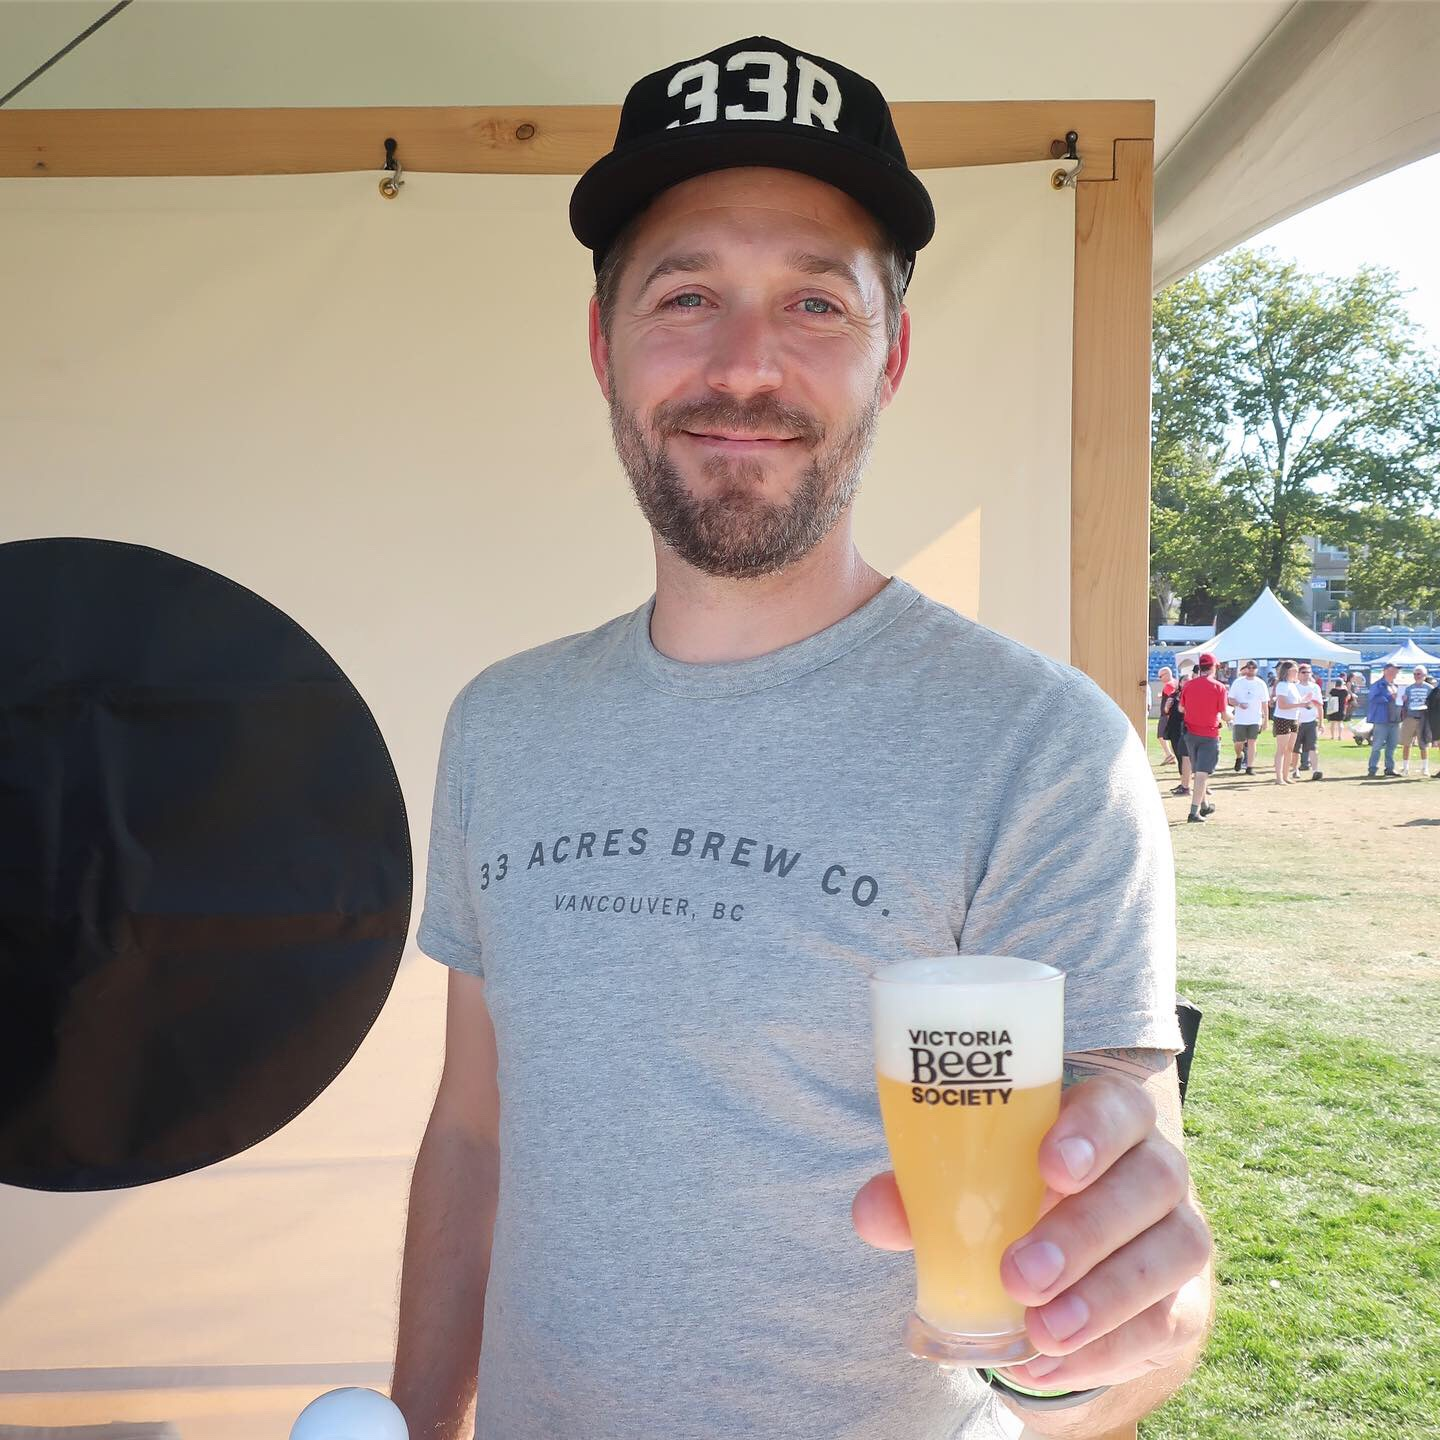 Former Portland brewer Trever Bass, now Head Brewer at 33 Brewing Experiment located in Vancouver, BC during the 2019 Great Canadian Beer Festival.